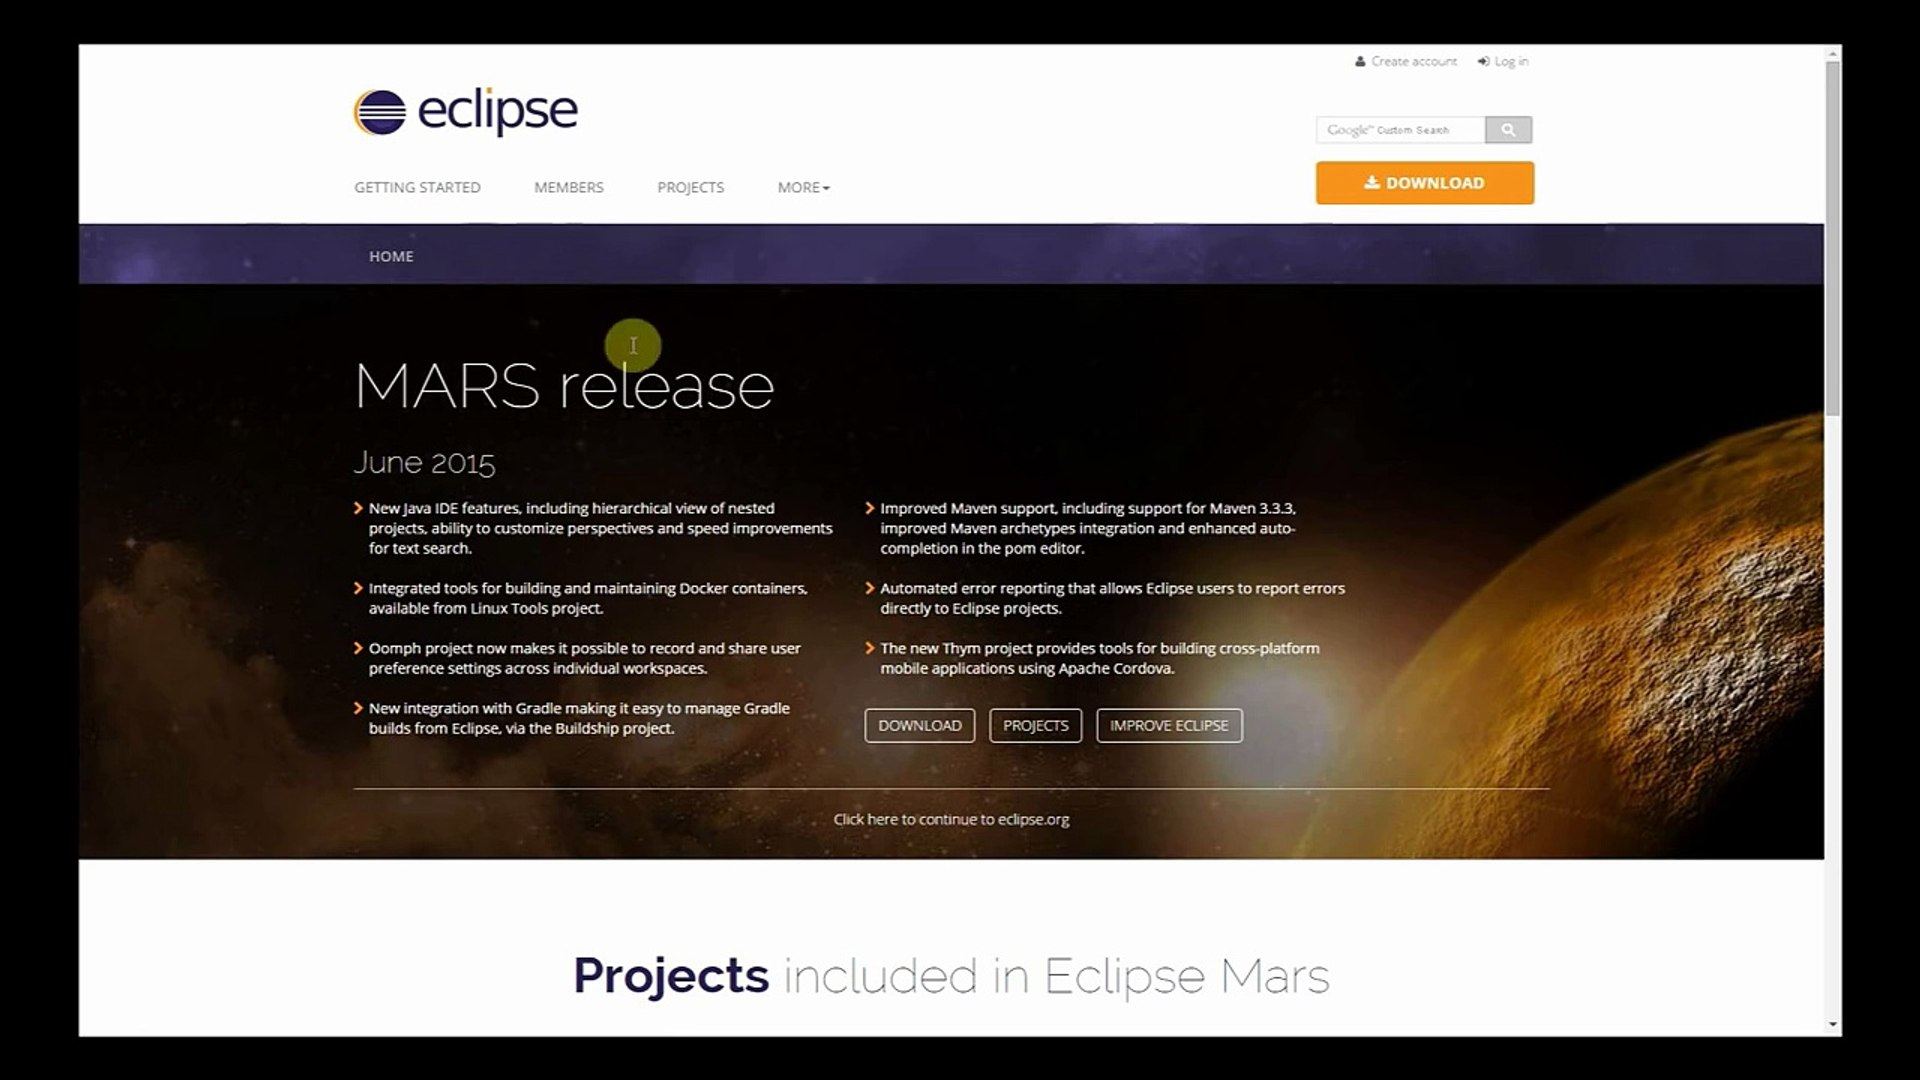 How to Install Android SDK & Eclipse ADT Plugin on Windows 10 using Eclipse  Mars new